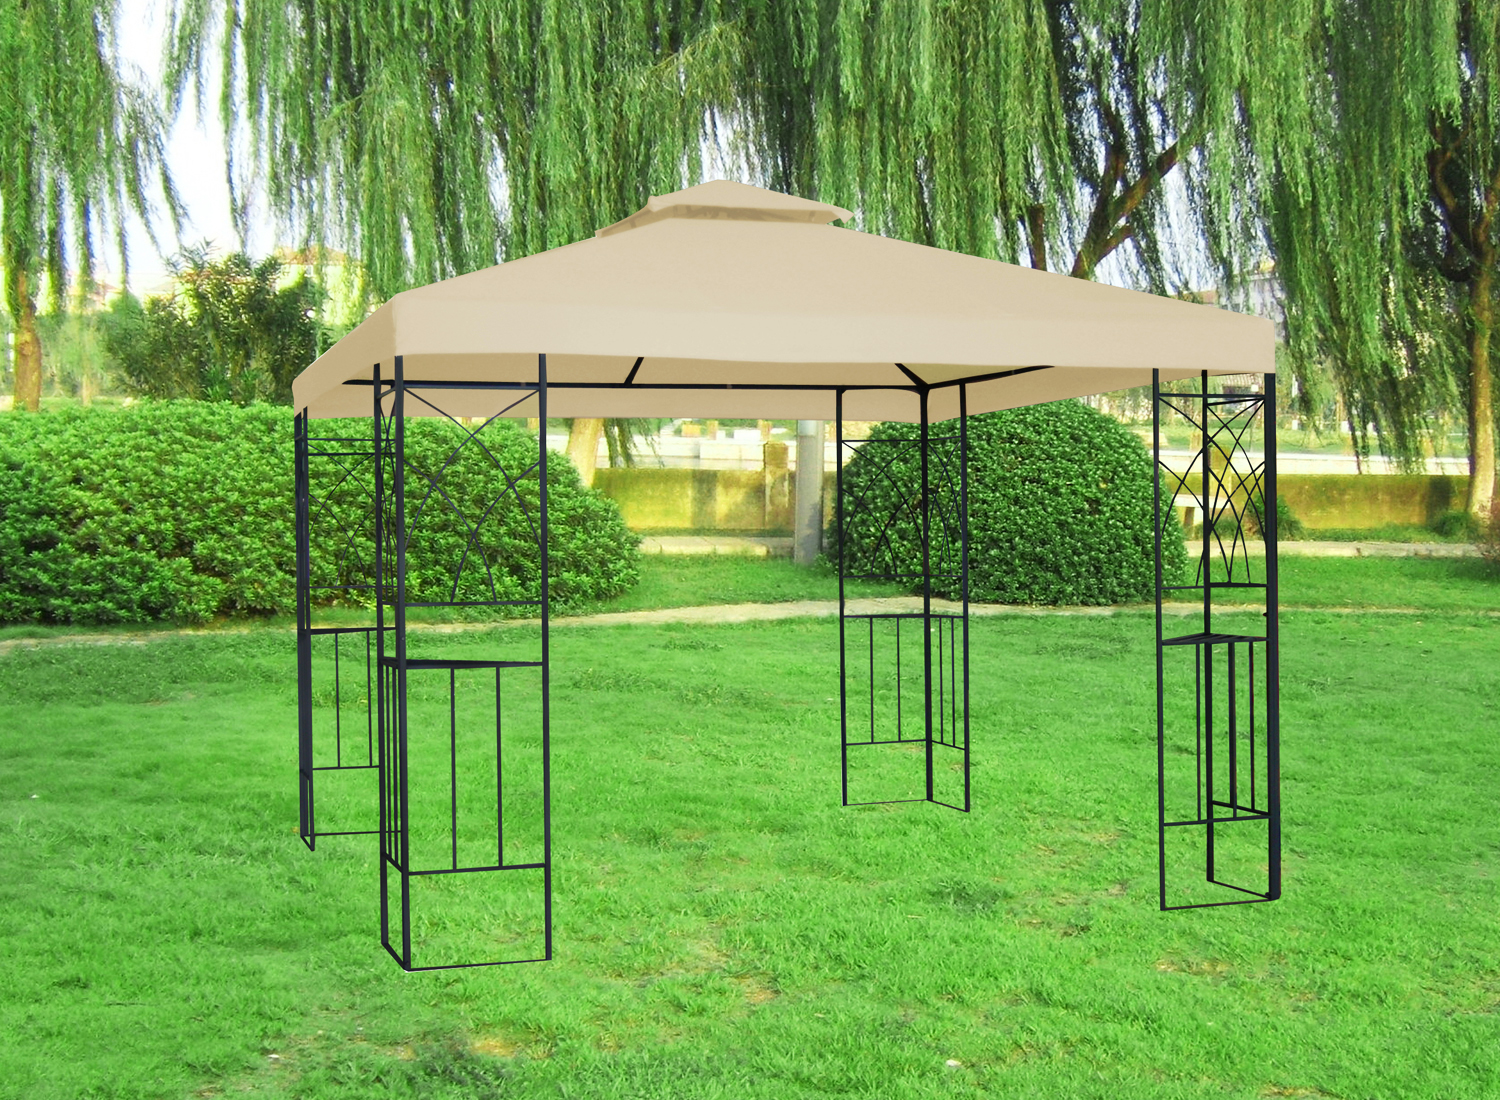 Metal Car Shelter : Outdoor metal shelters backyard car shelter